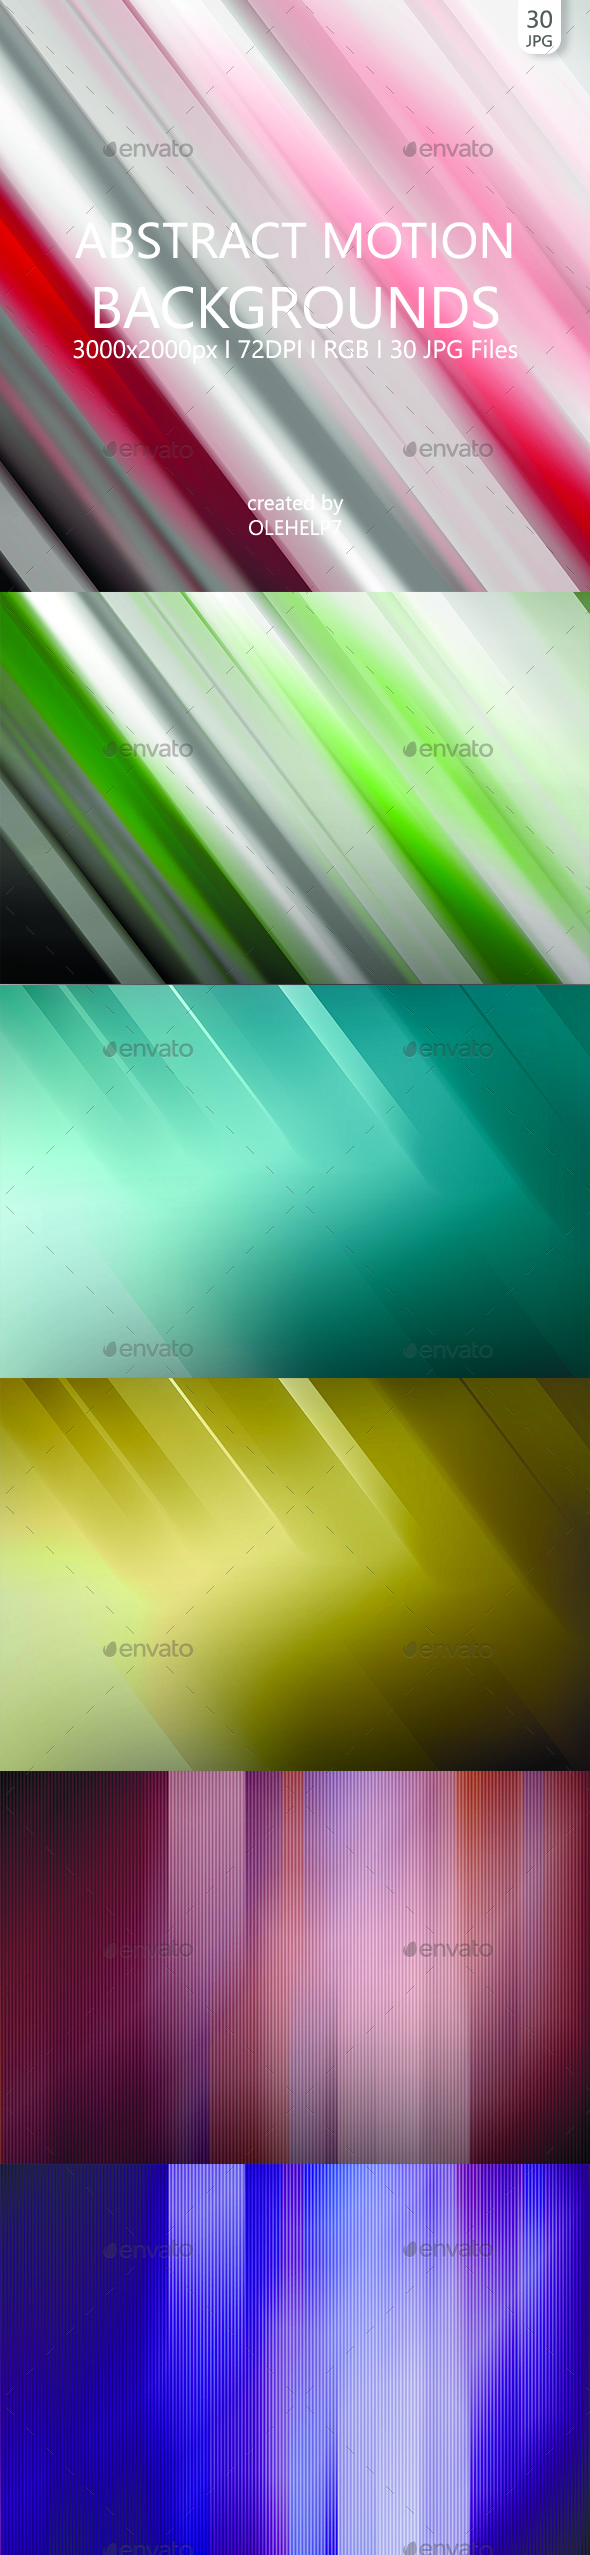 Abstract Motion 30 Backgrounds - Abstract Backgrounds